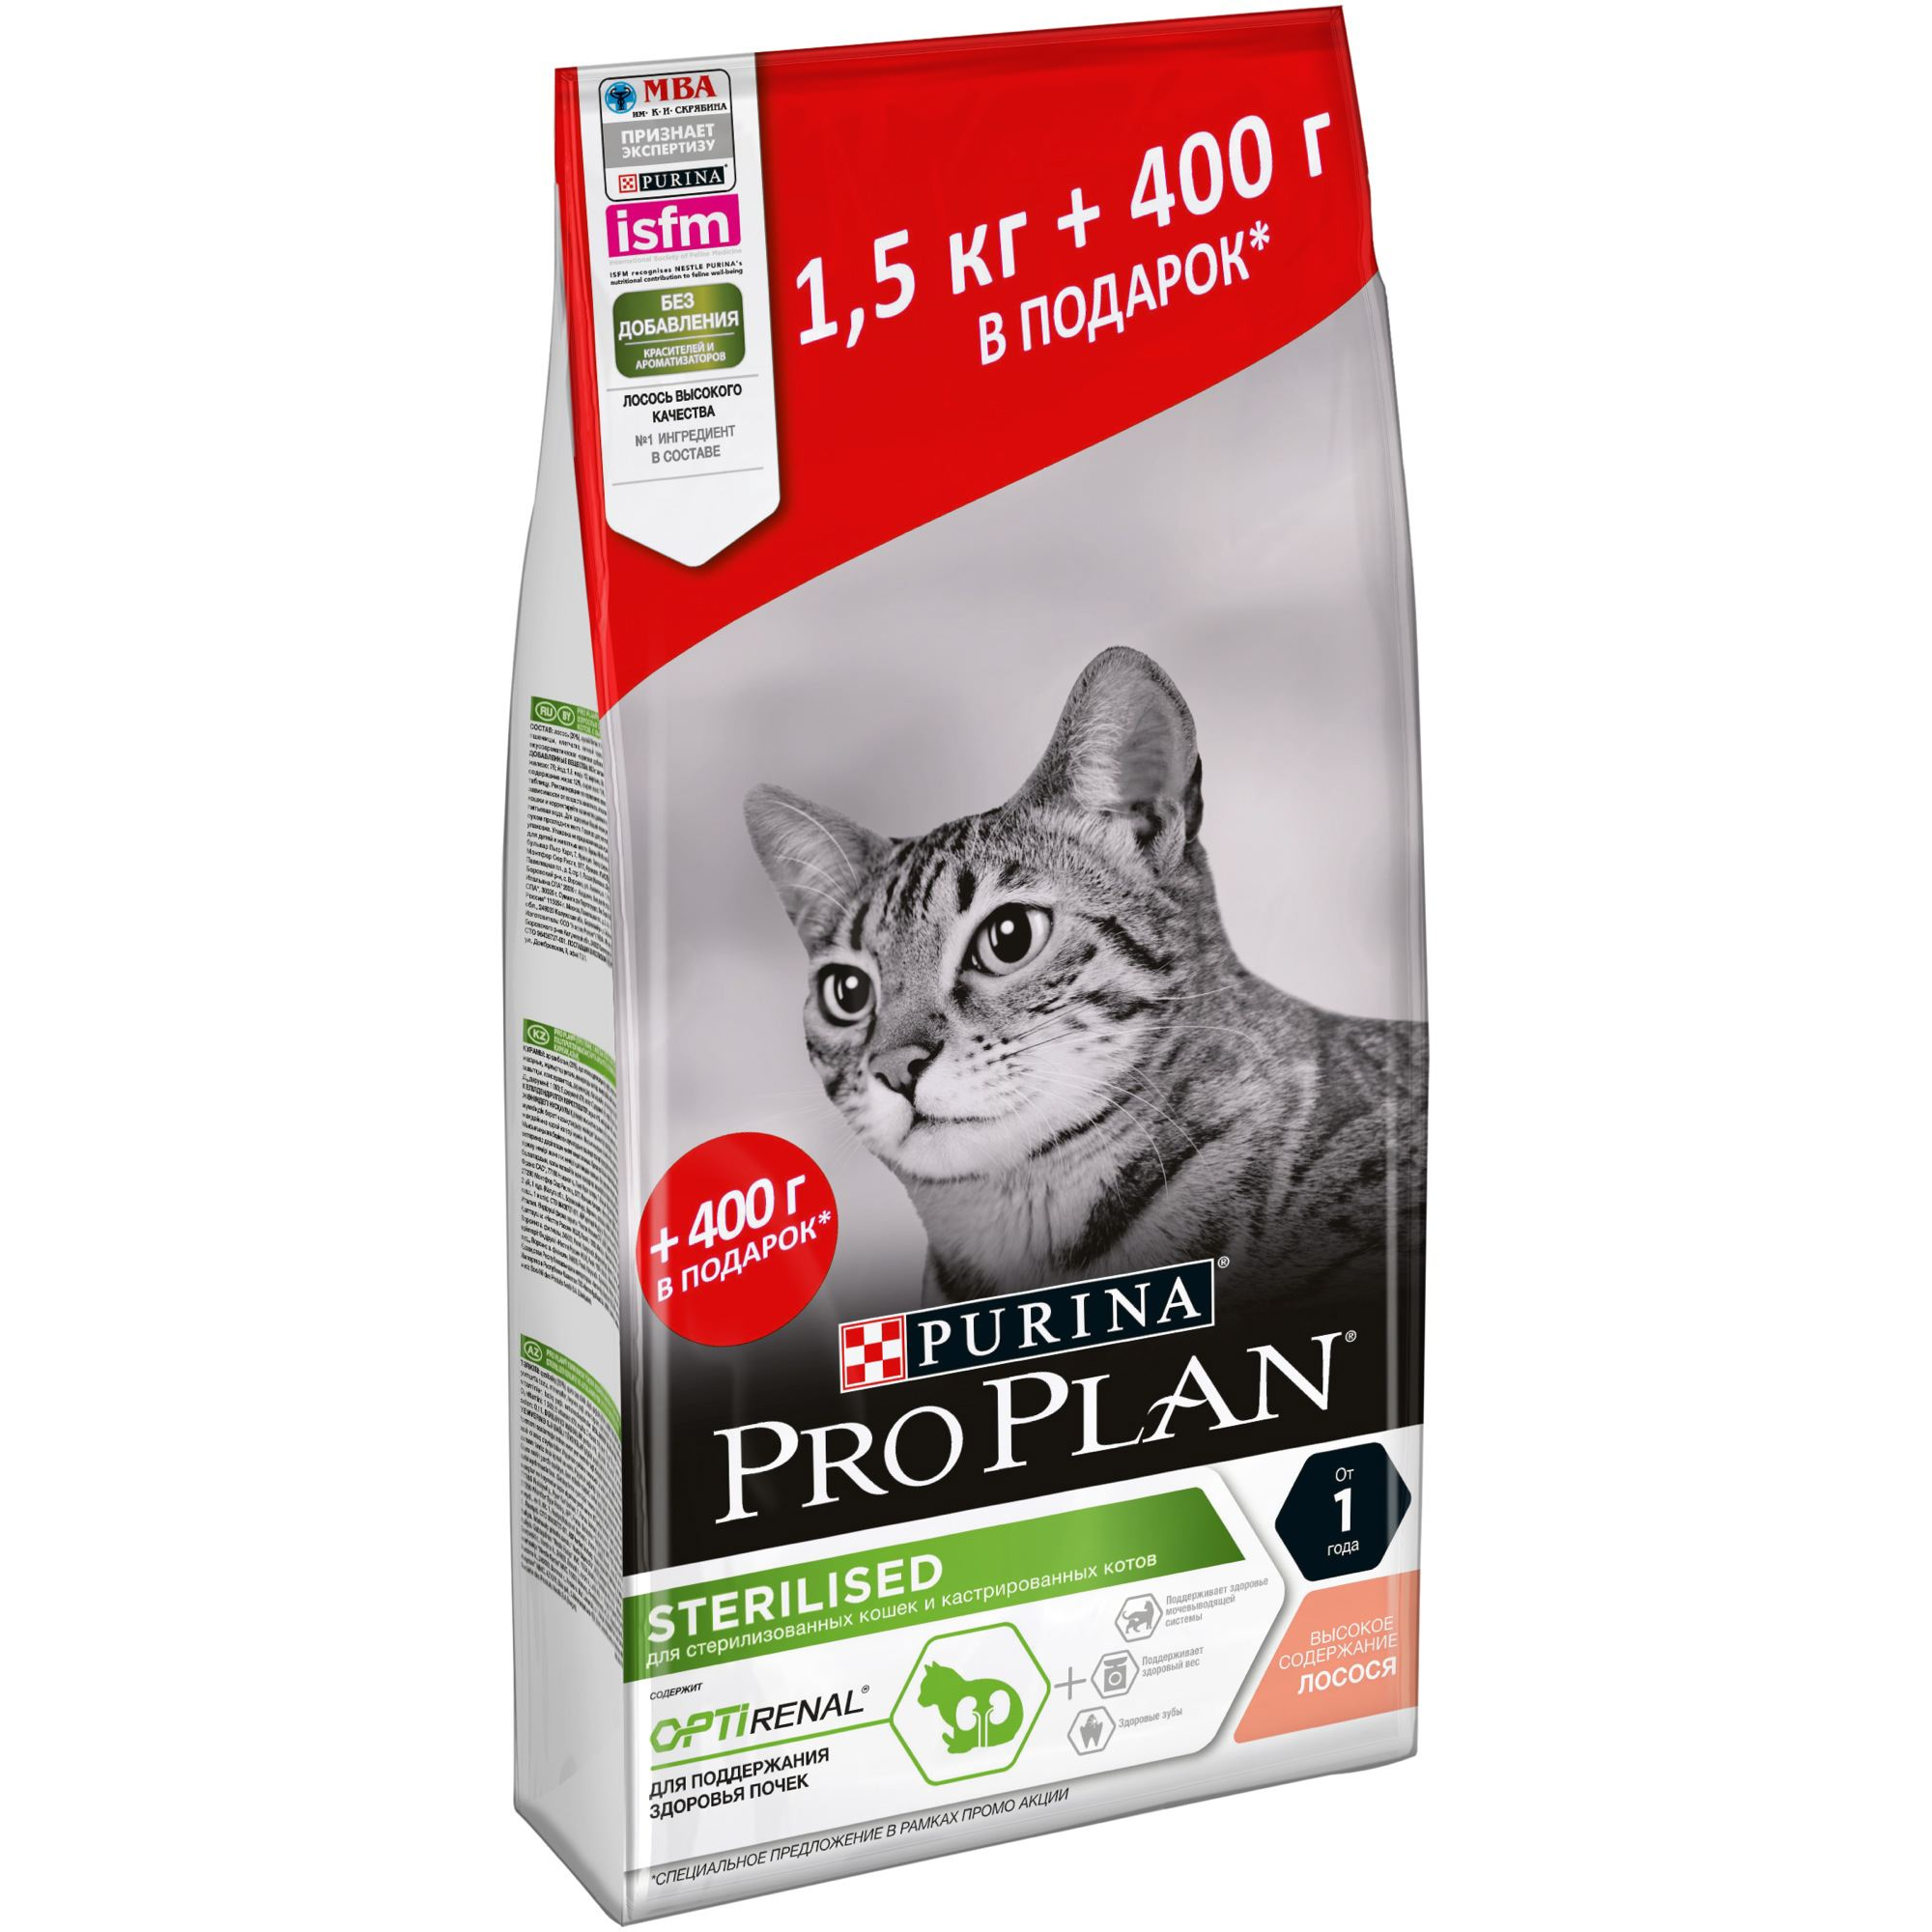 Promopak set: Purina Pro Plan dry food for sterilized cats and neutered cats, with salmon, 6 pcs. x 1.5 kg + 400 g dry food pro plan for sterilized cats and neutered cats with salmon 12 kg